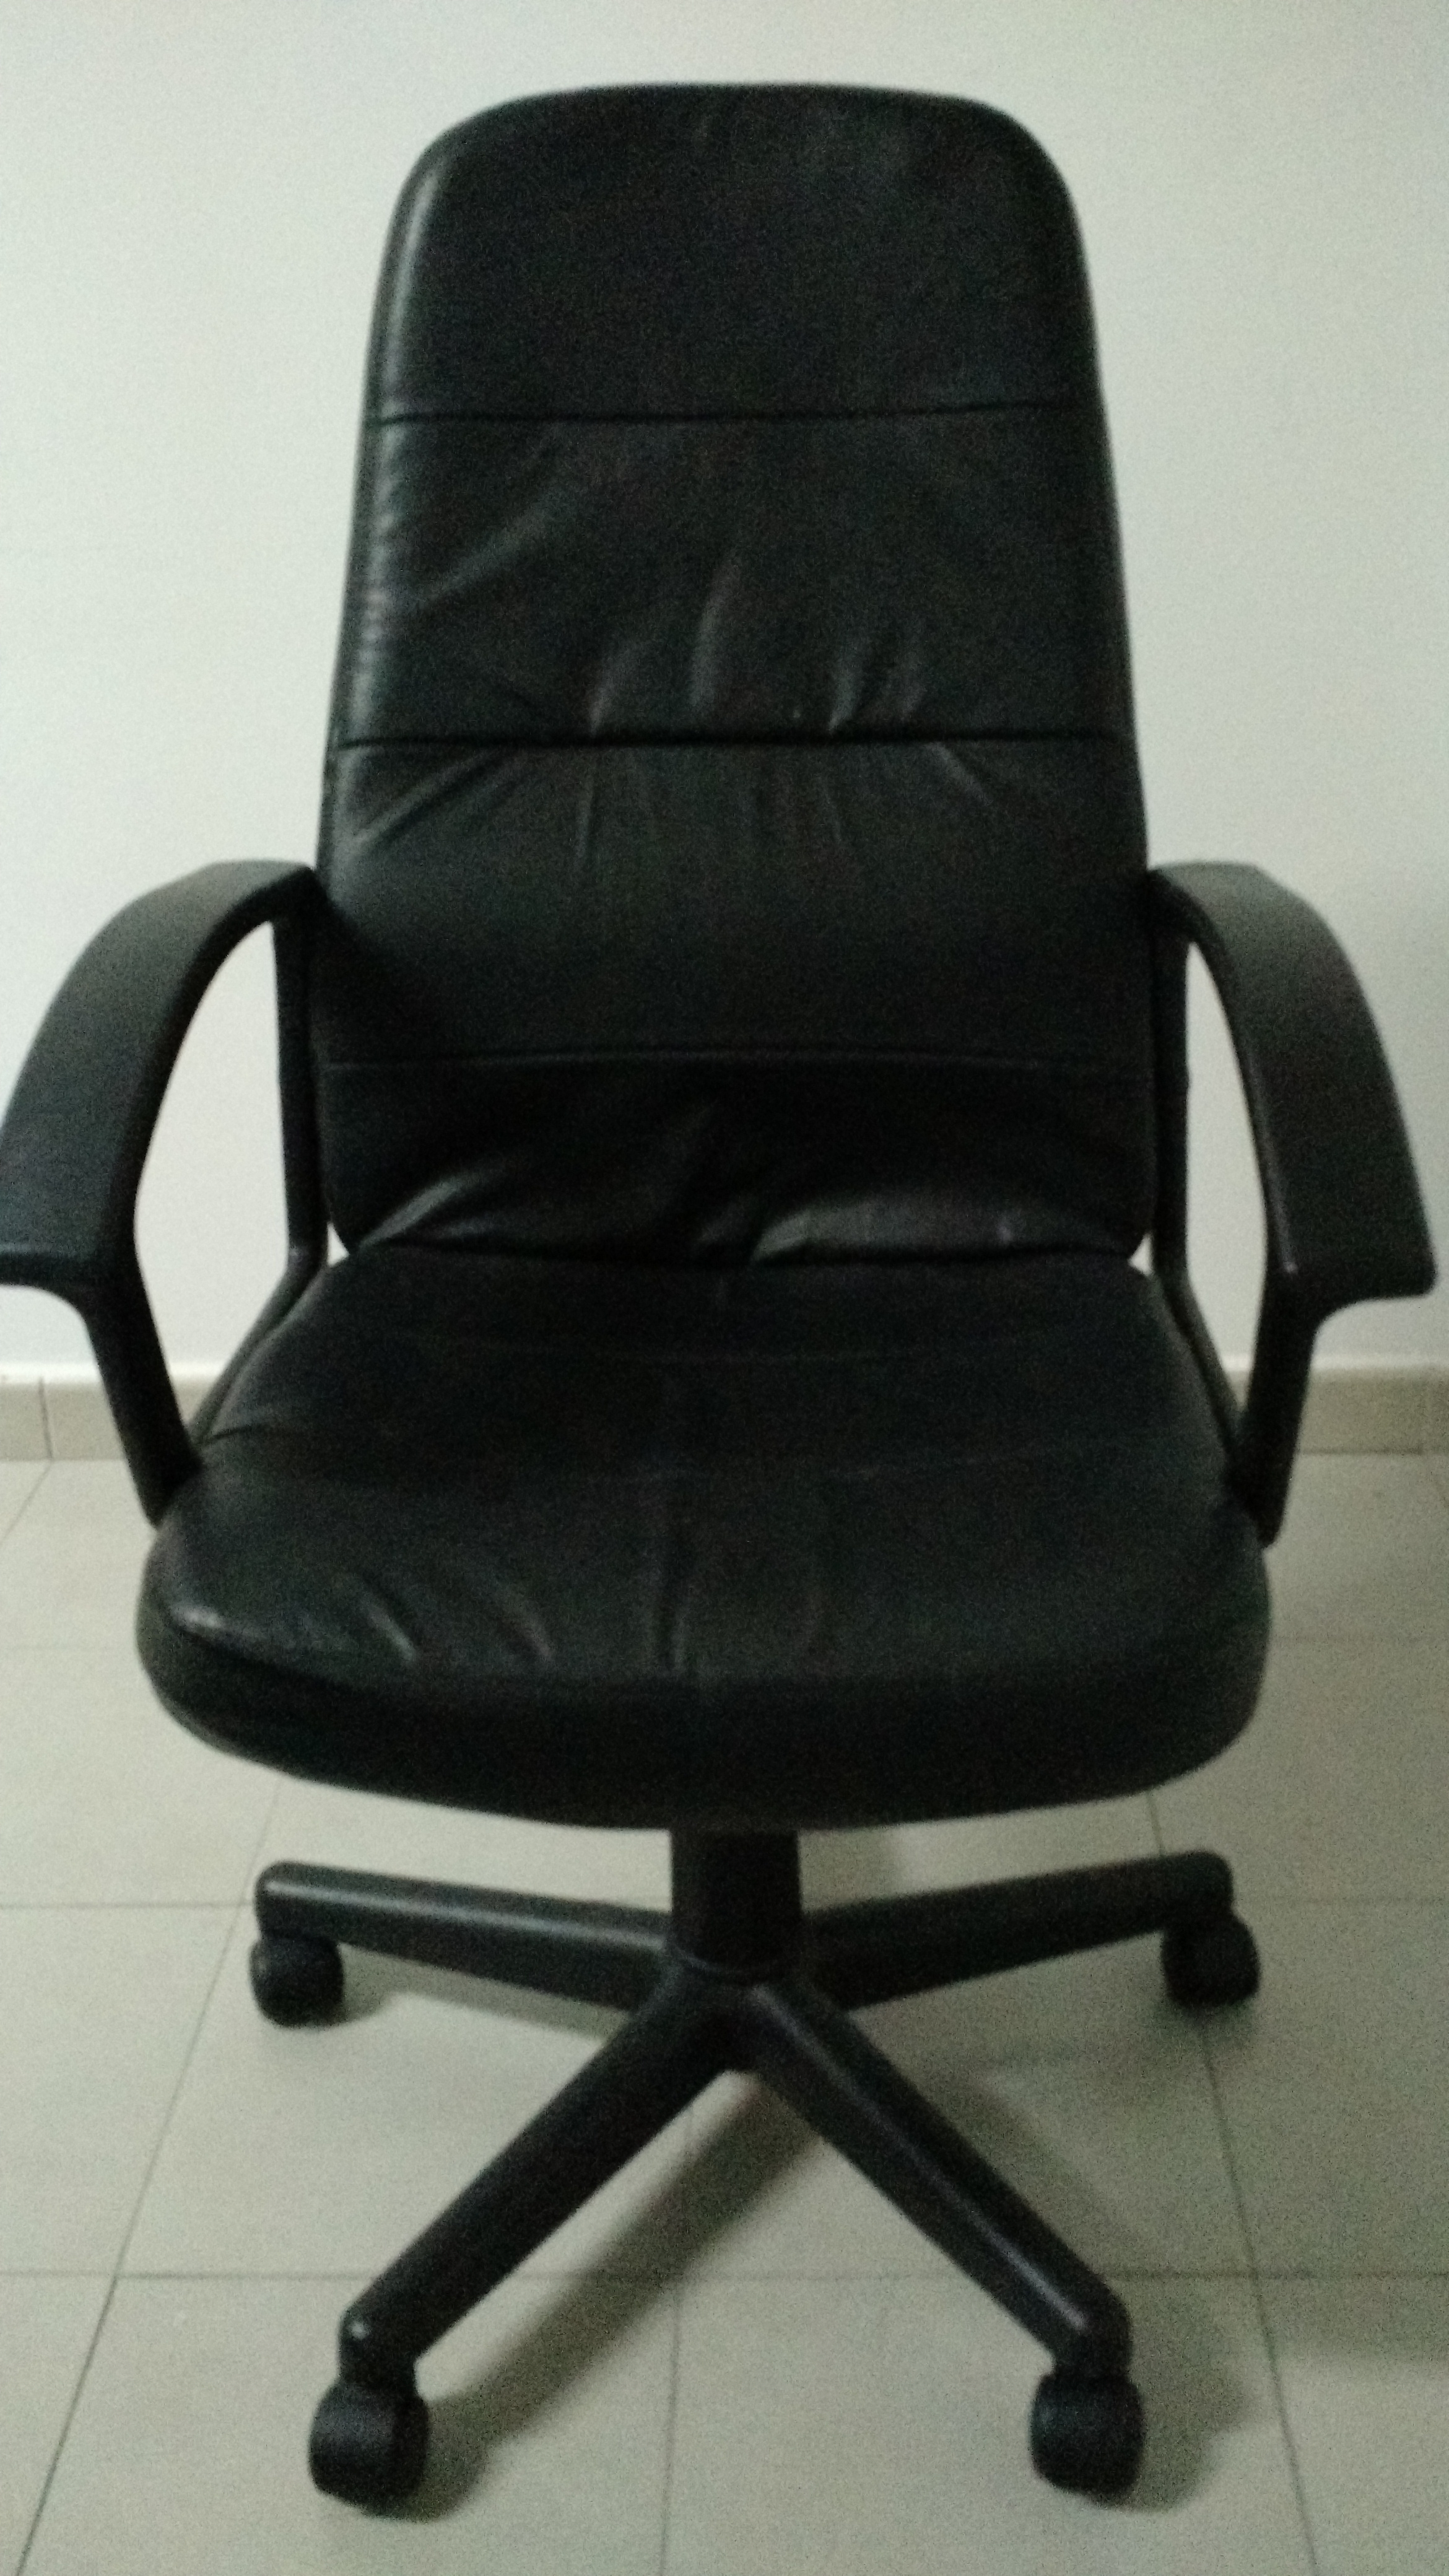 for sale office chair black faux leather buy and sell items in